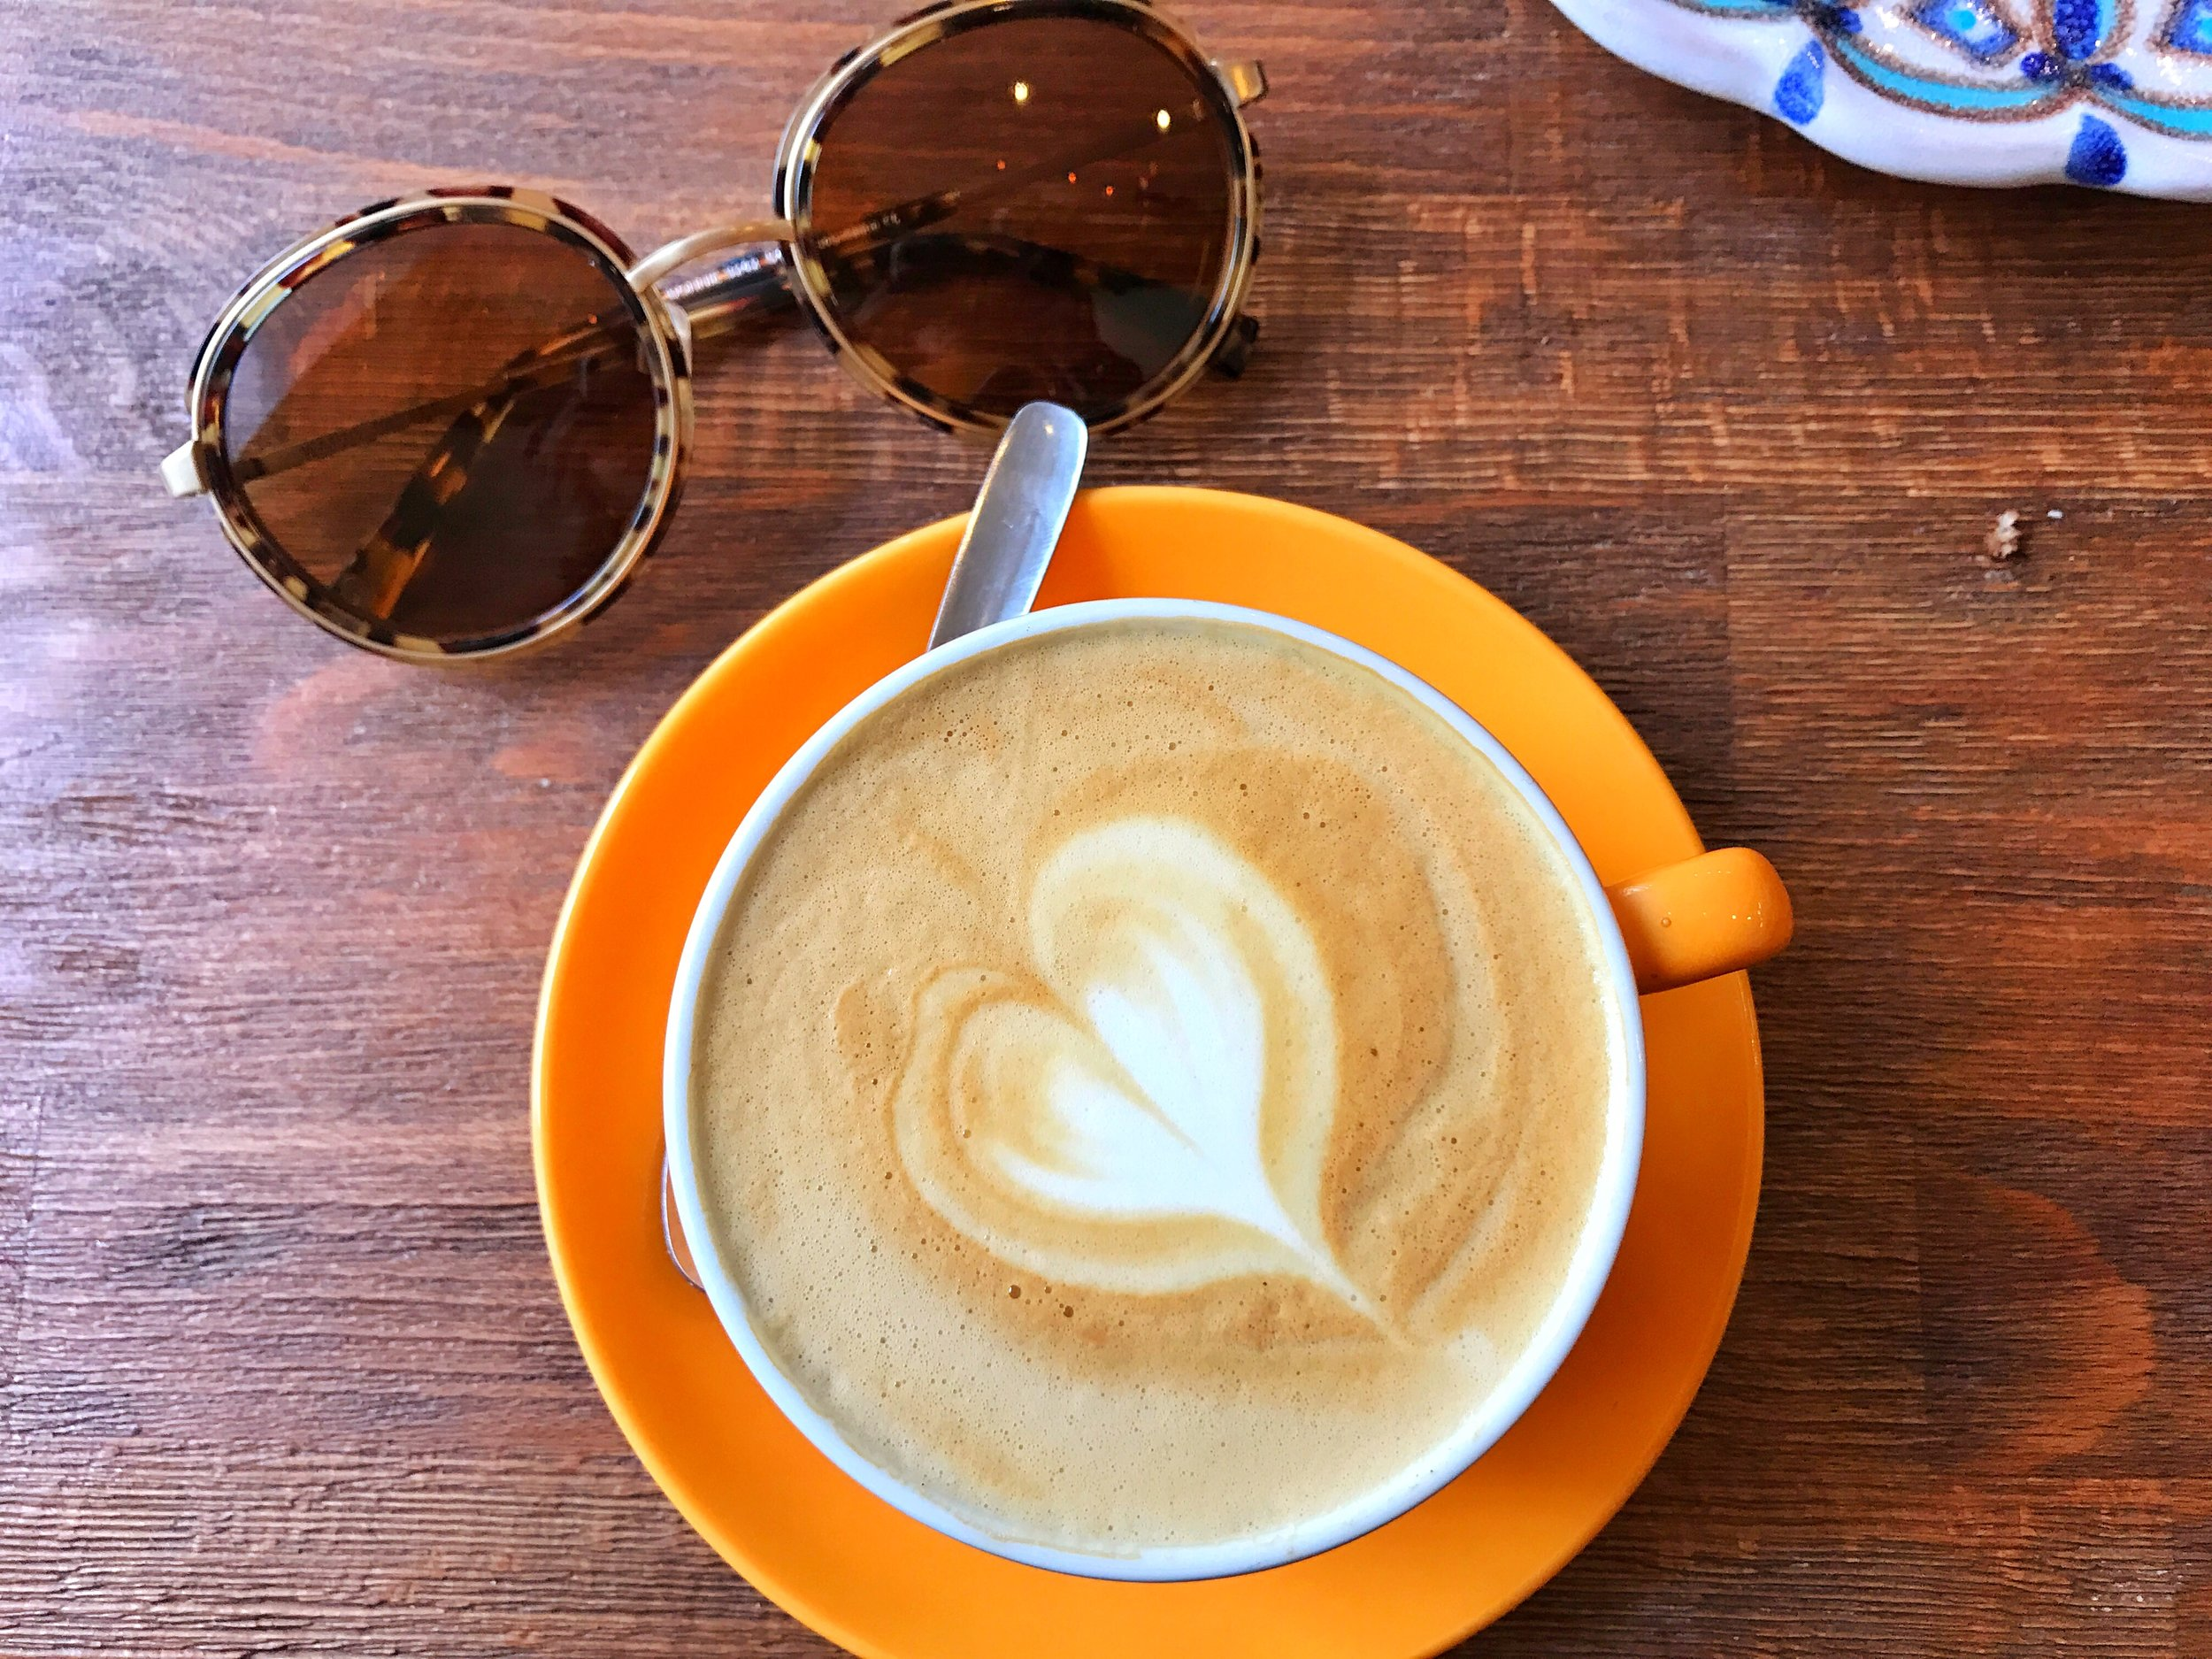 Cappucinno- The cappcuino was perfectl sweetened and I loved starting my morning this way.